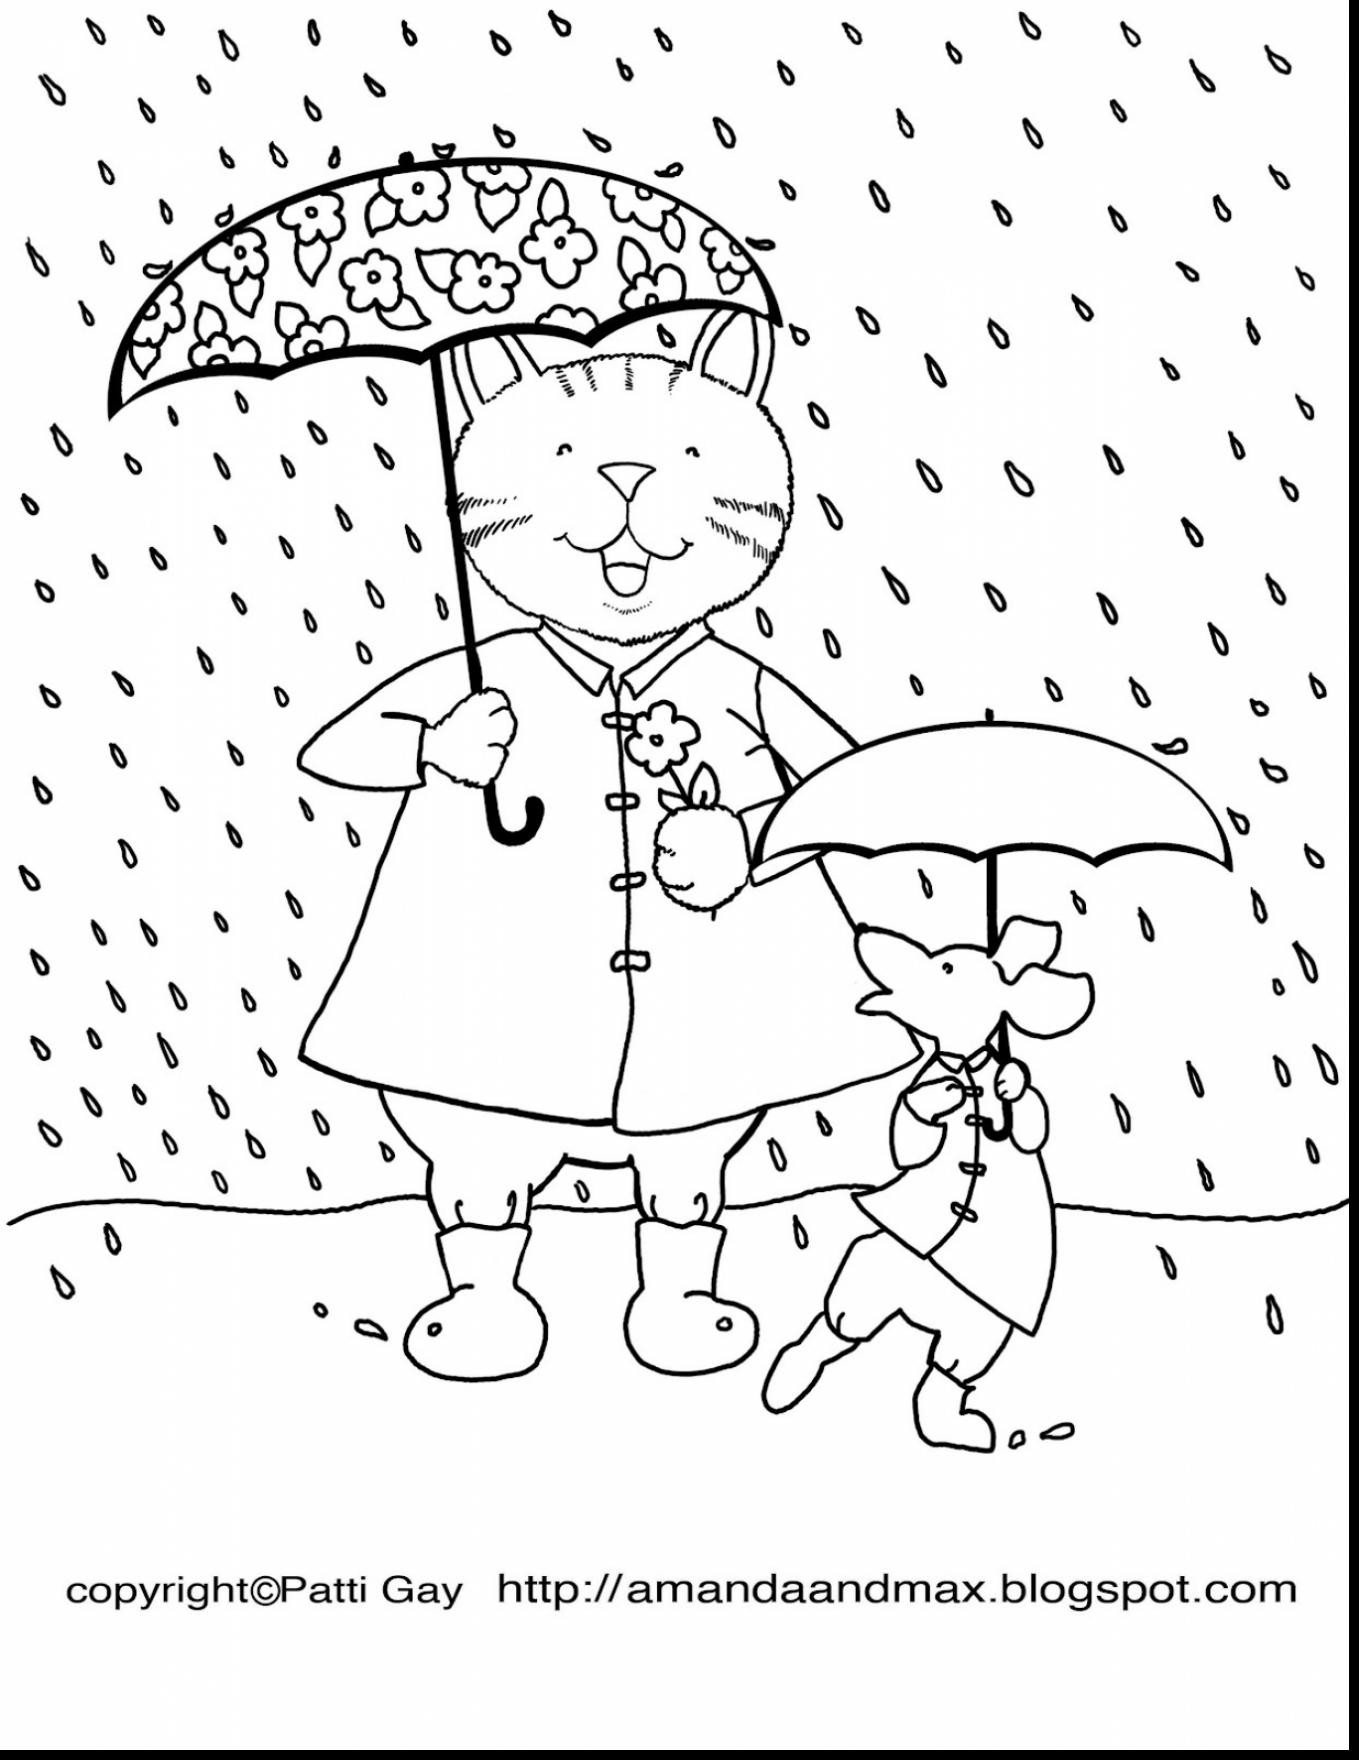 cloudy day coloring pages coloring picture of cloudy day coloring pages pages coloring cloudy day